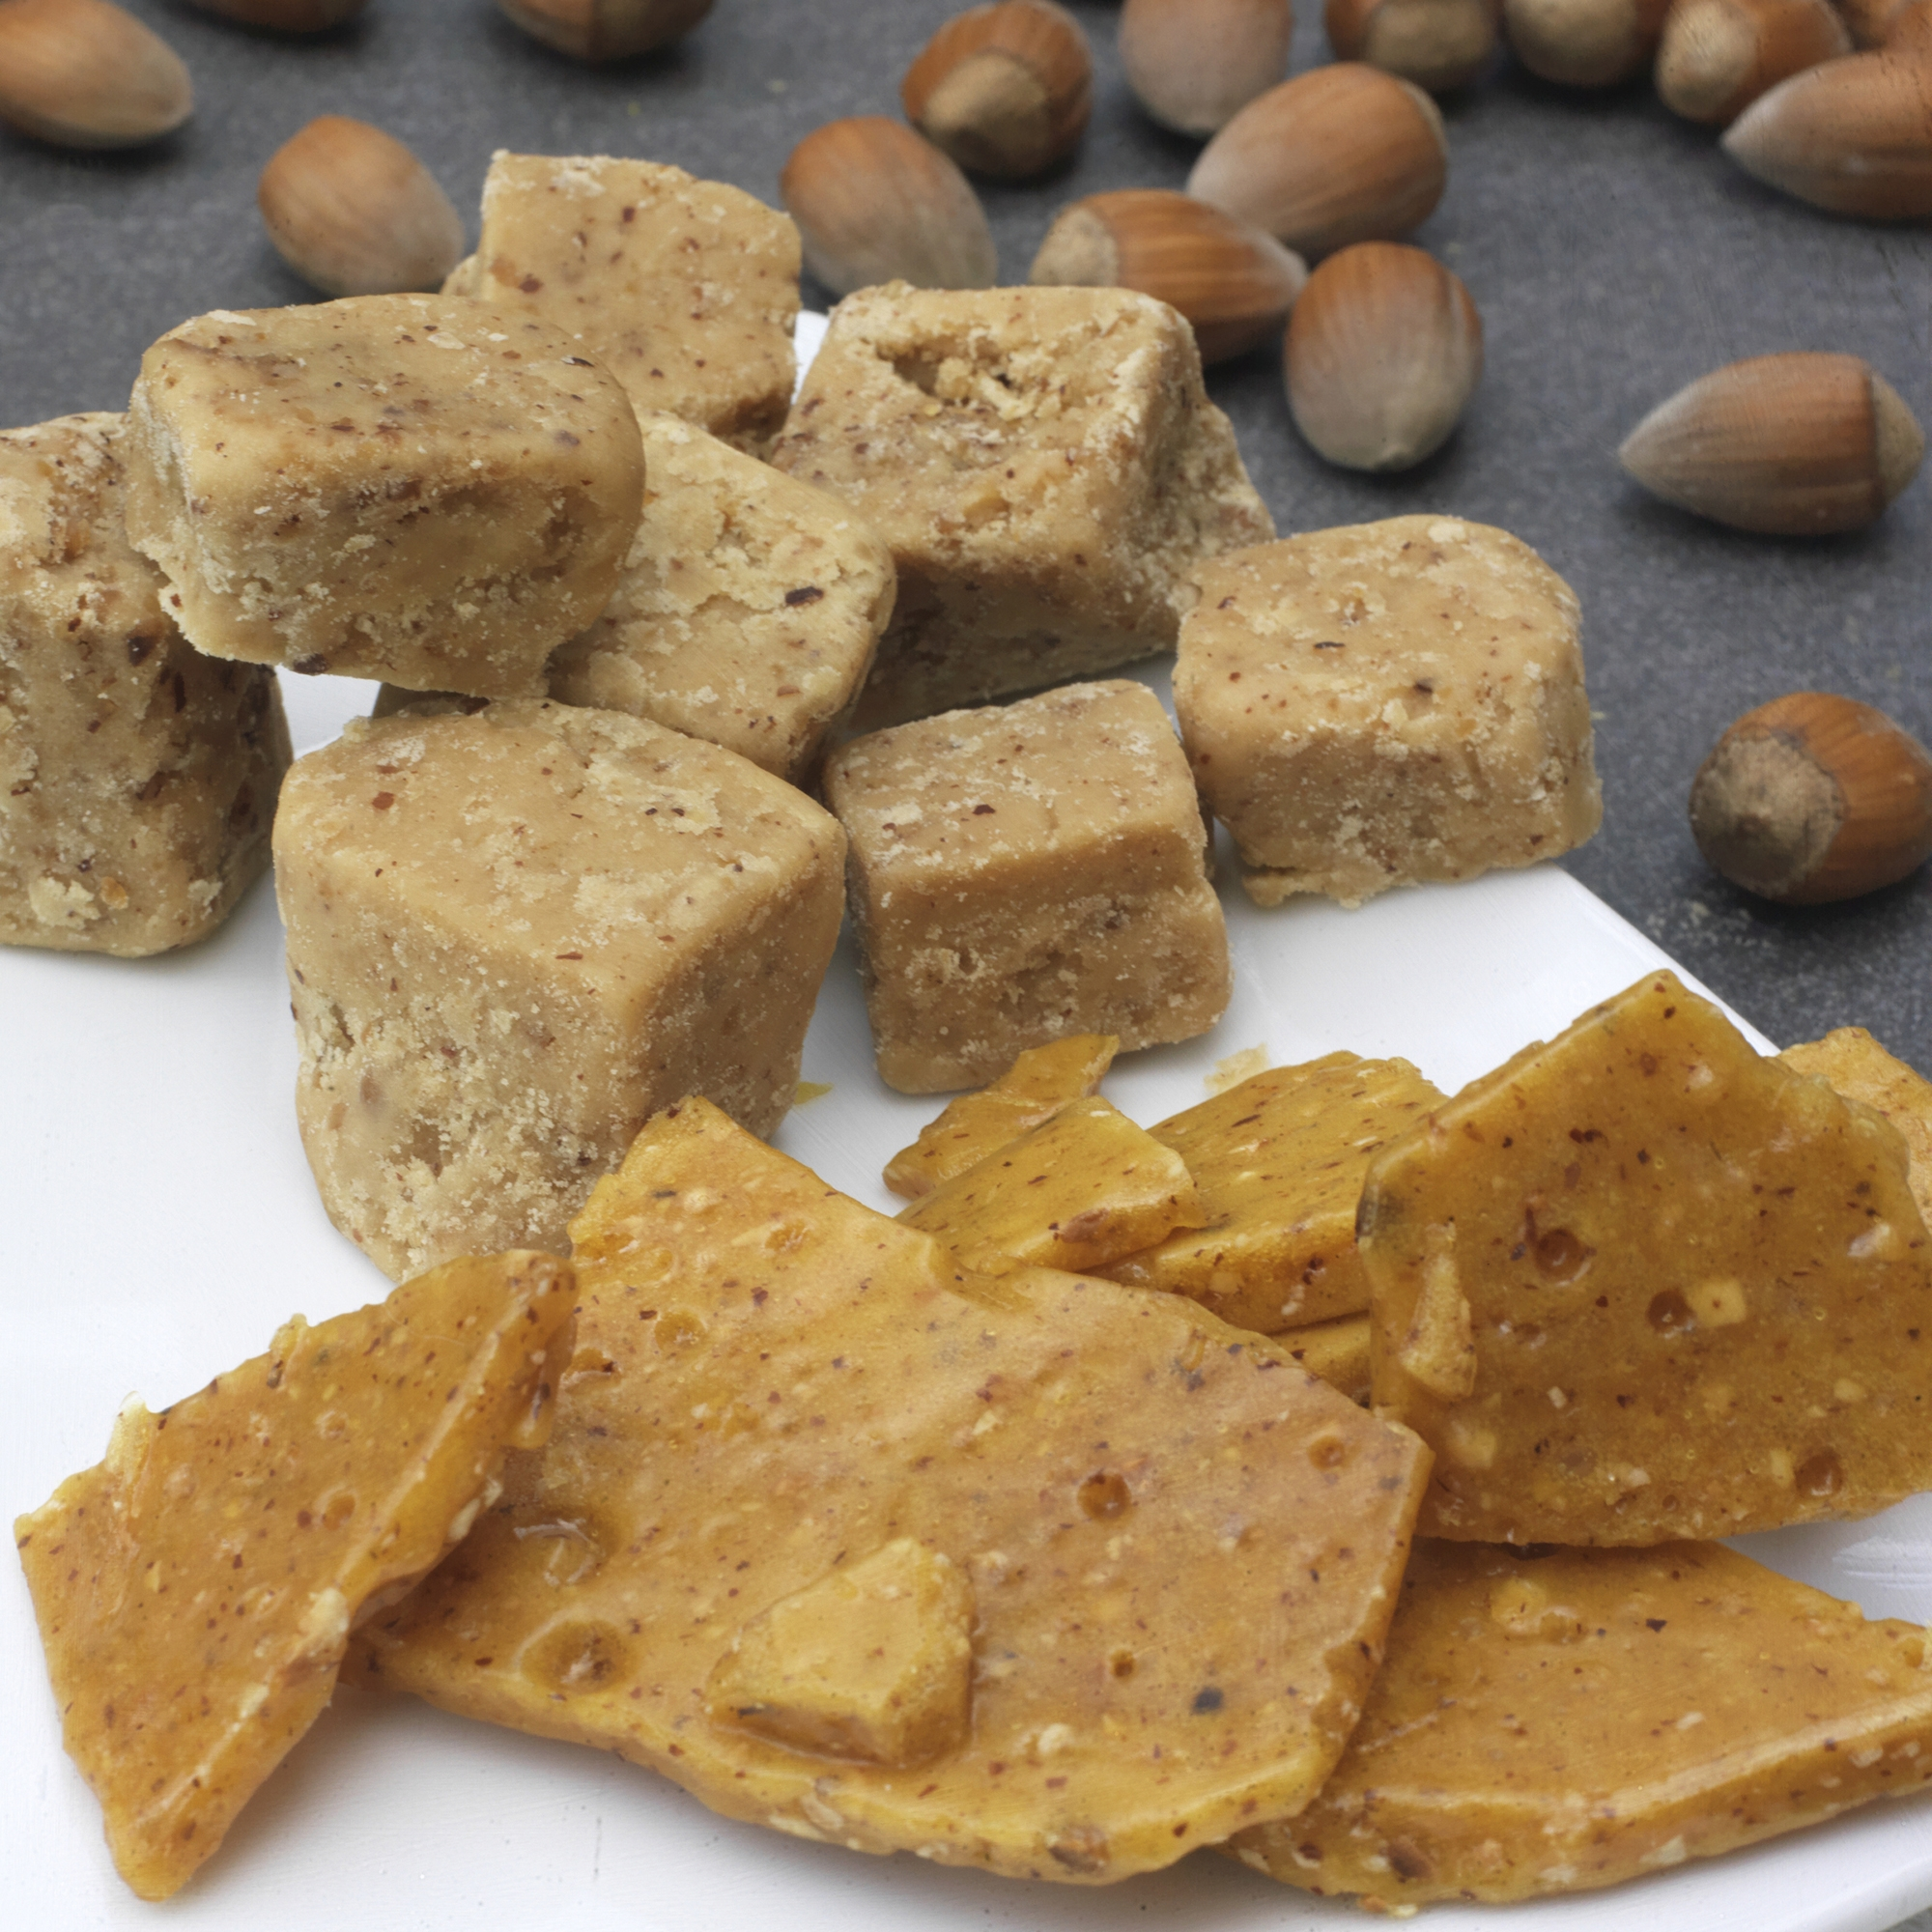 A Sensationally Sticky Offer! - 20% OFF our fudges and brittles...